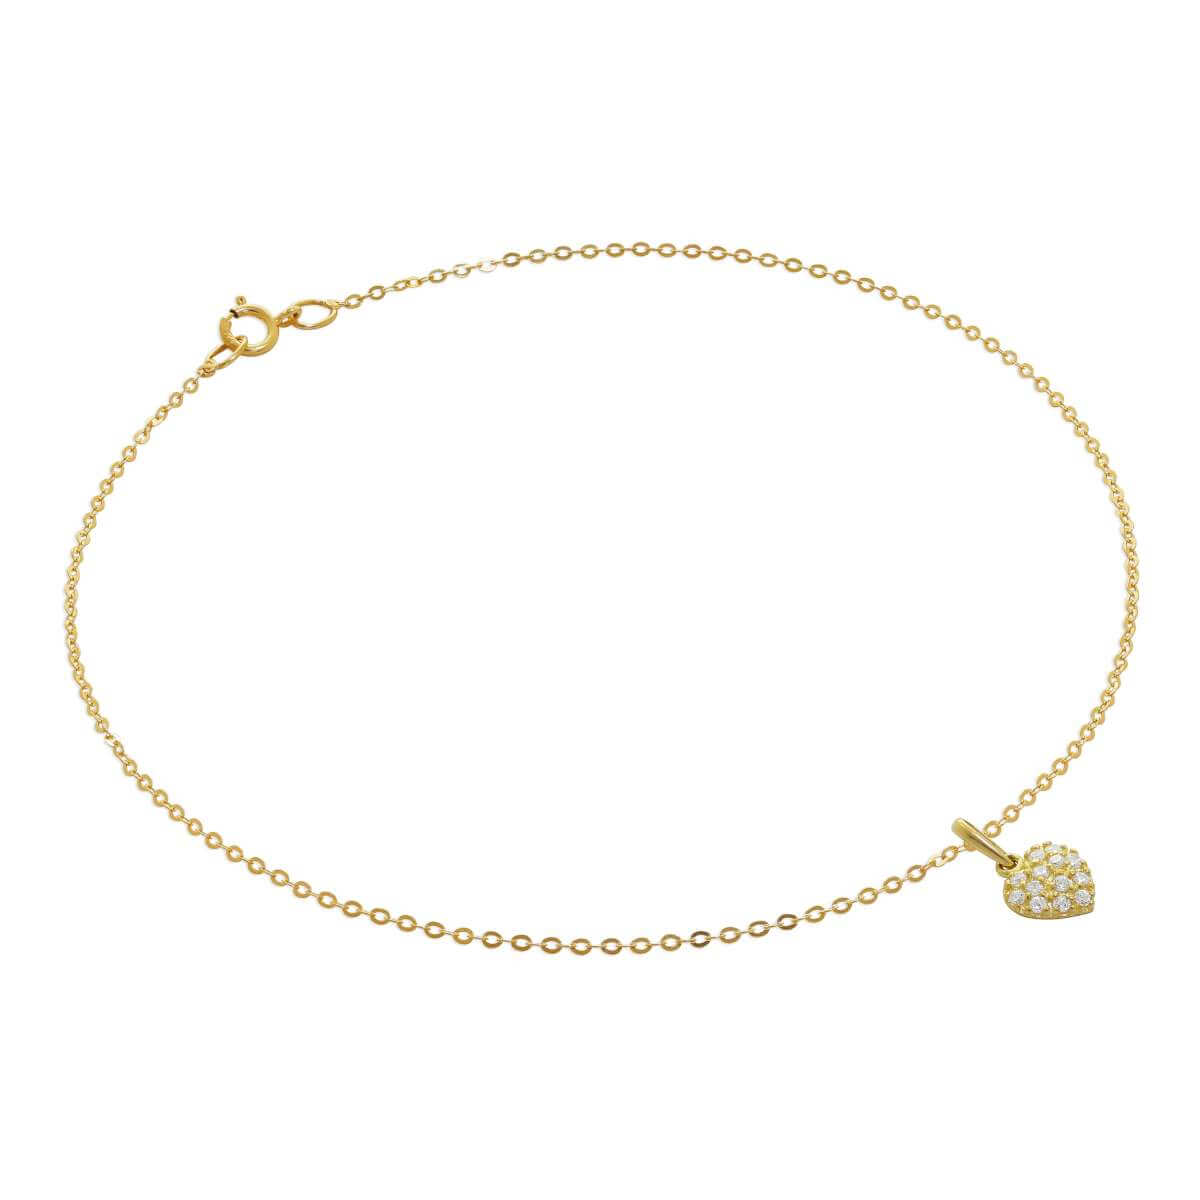 9ct Gold Hammered Trace Anklet with Flat CZ Heart Charm - 9.5 Inches